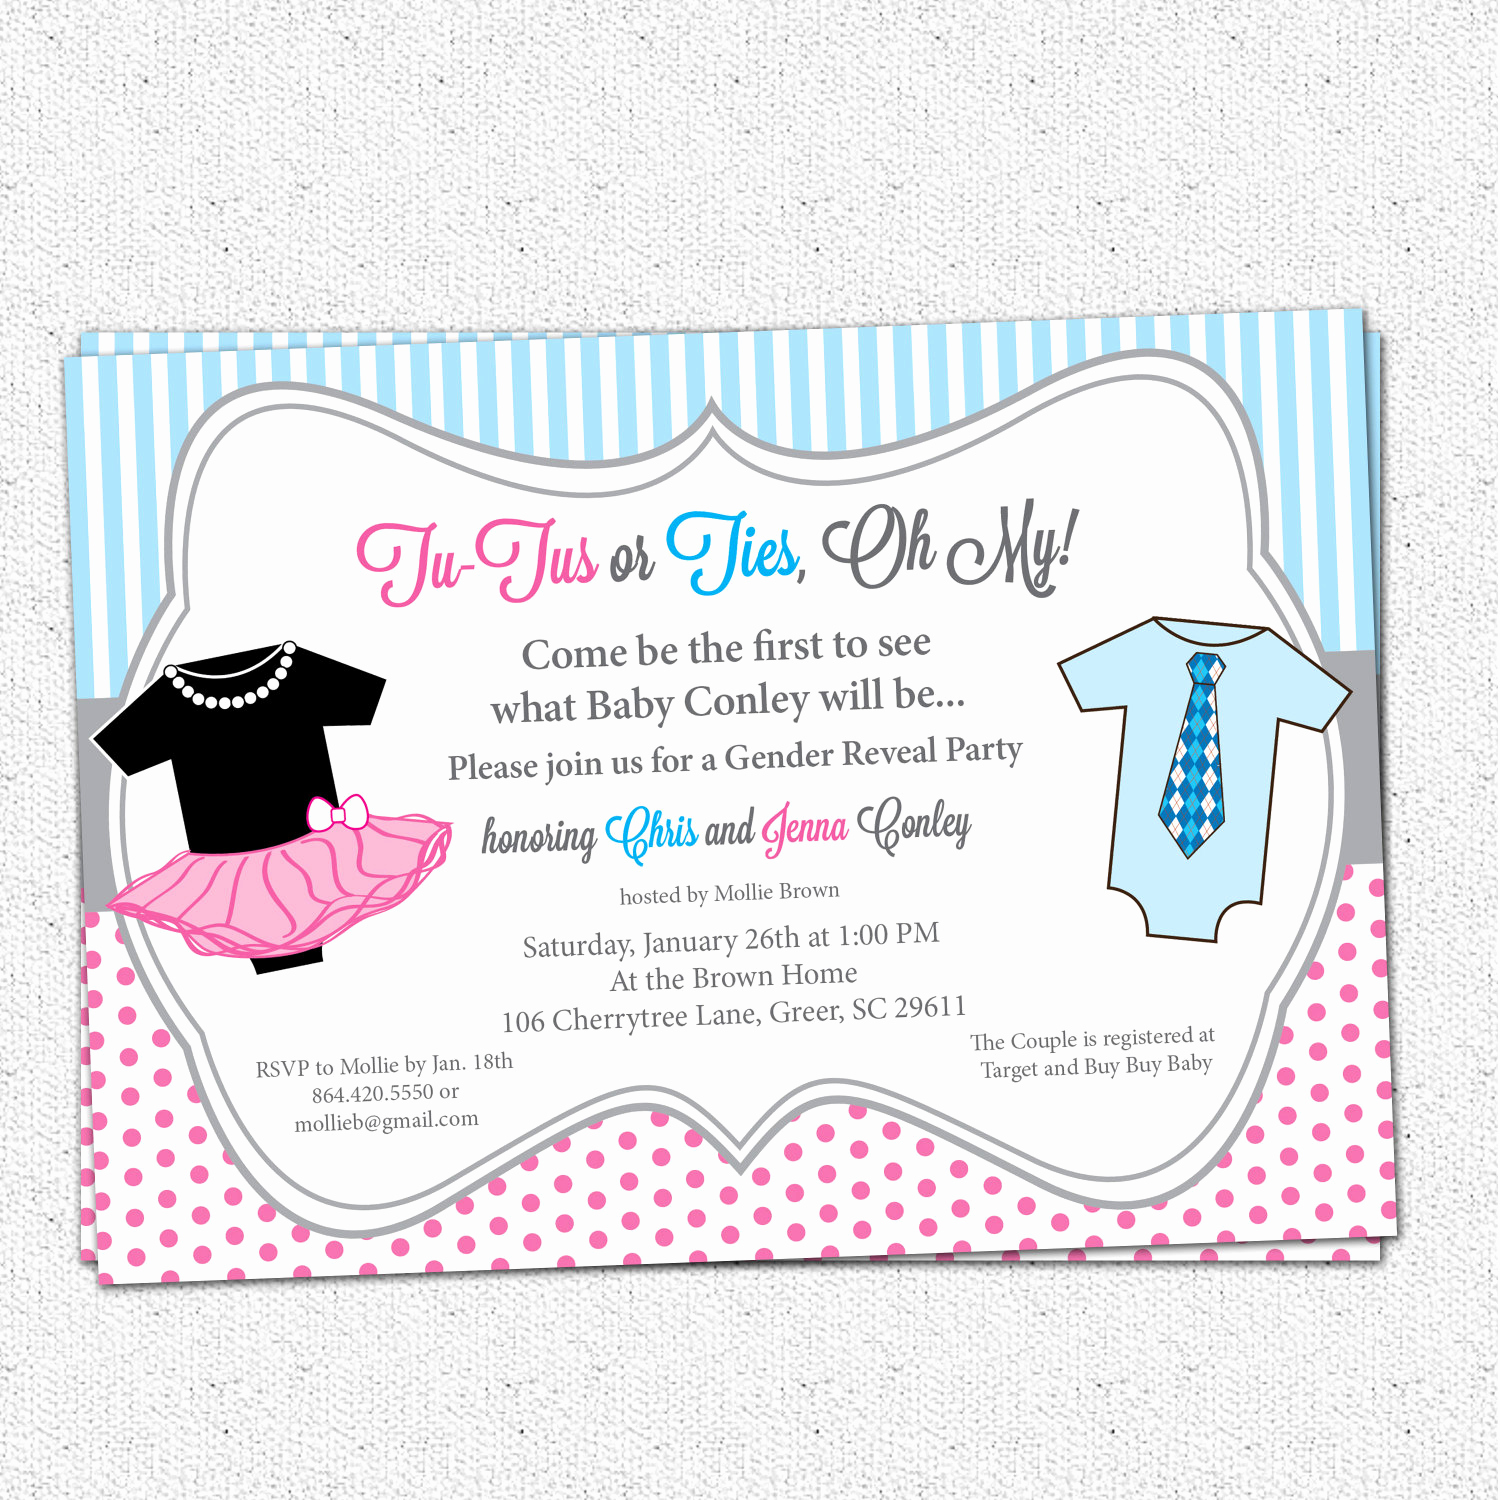 Gender Reveal Party Invitation Wording Lovely Tutus or Ties Gender Reveal Baby Shower Party Invitation